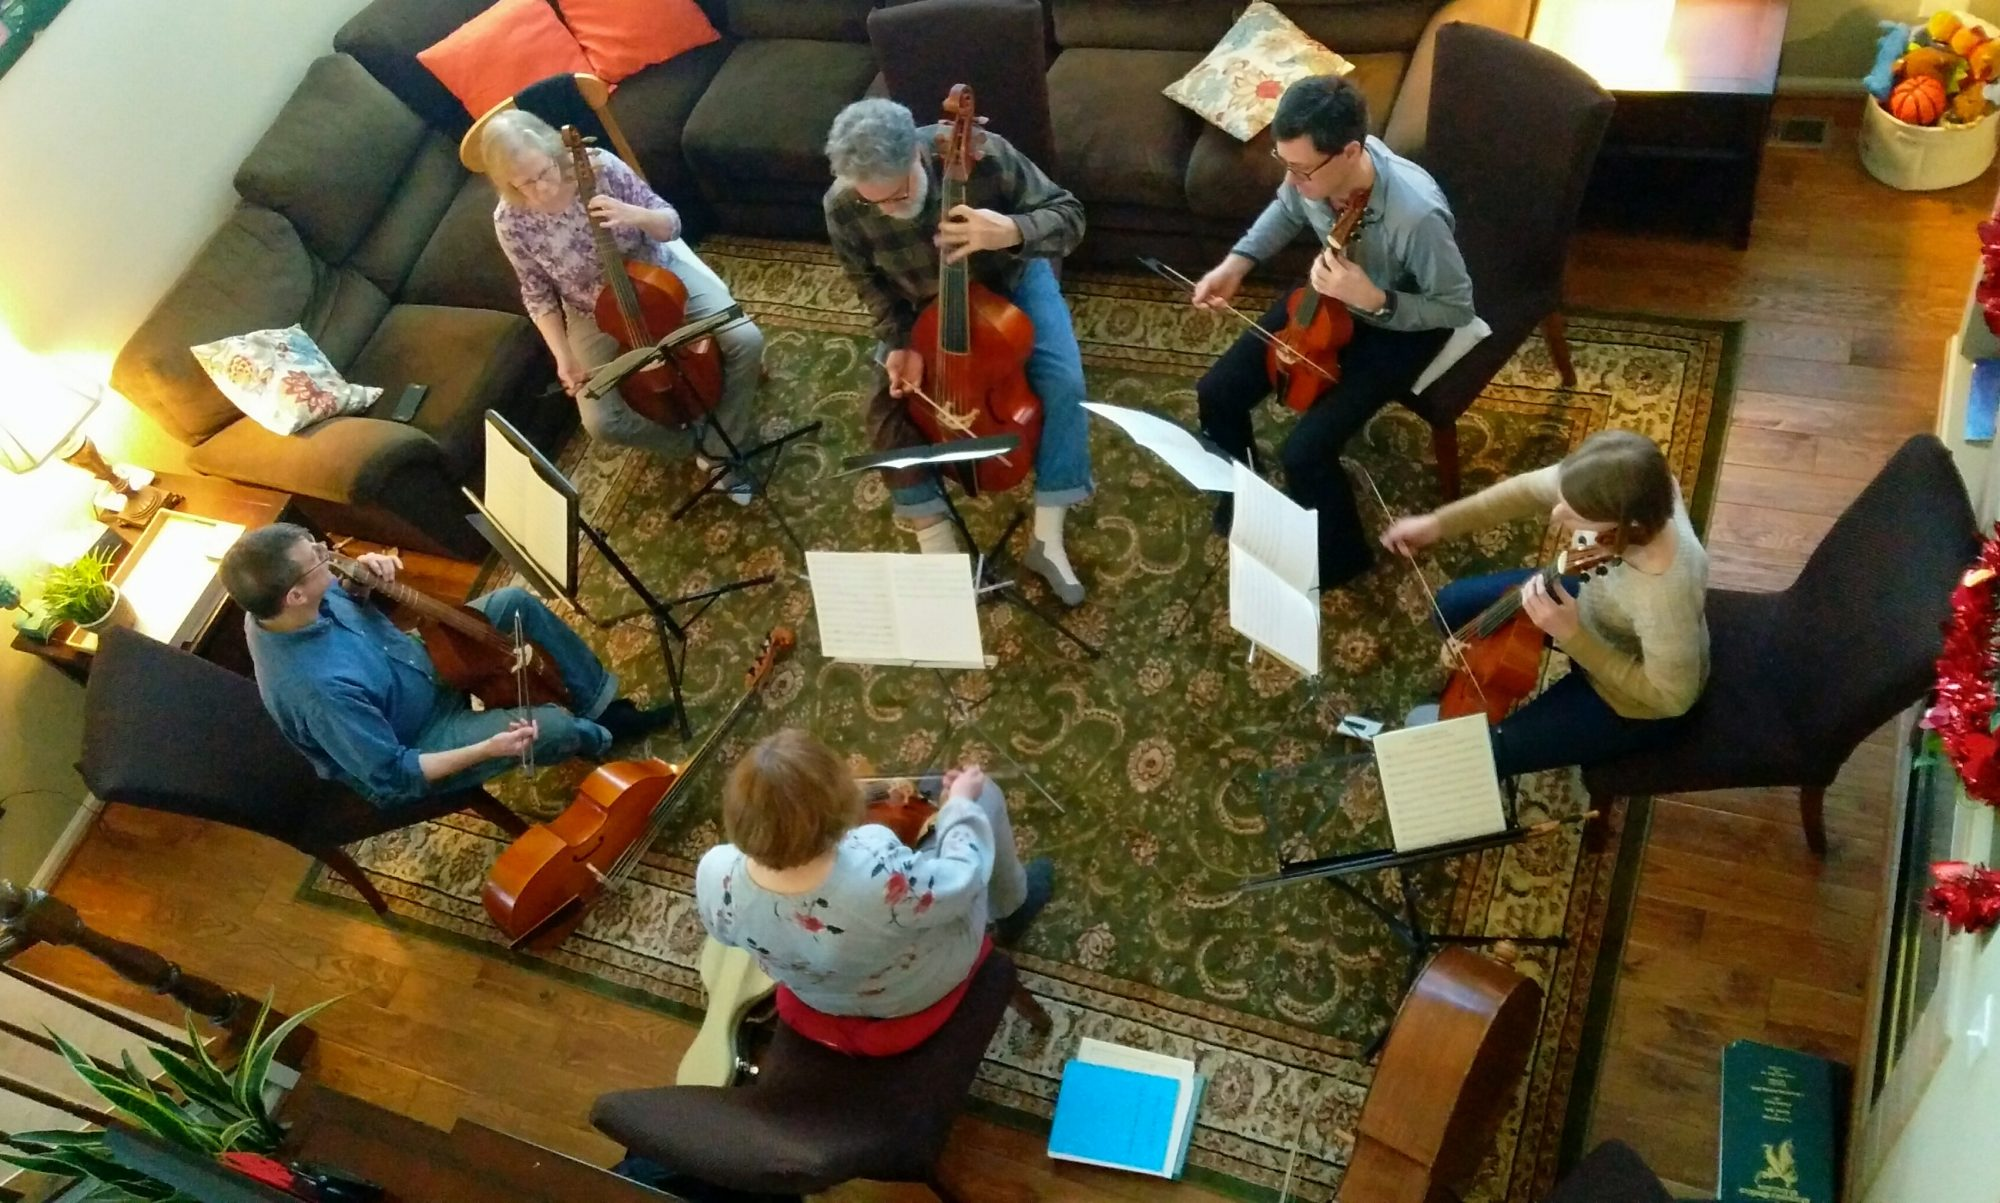 VdGS 3rd Coast - The Chicago Chapter of the Viola da Gamba Society of America